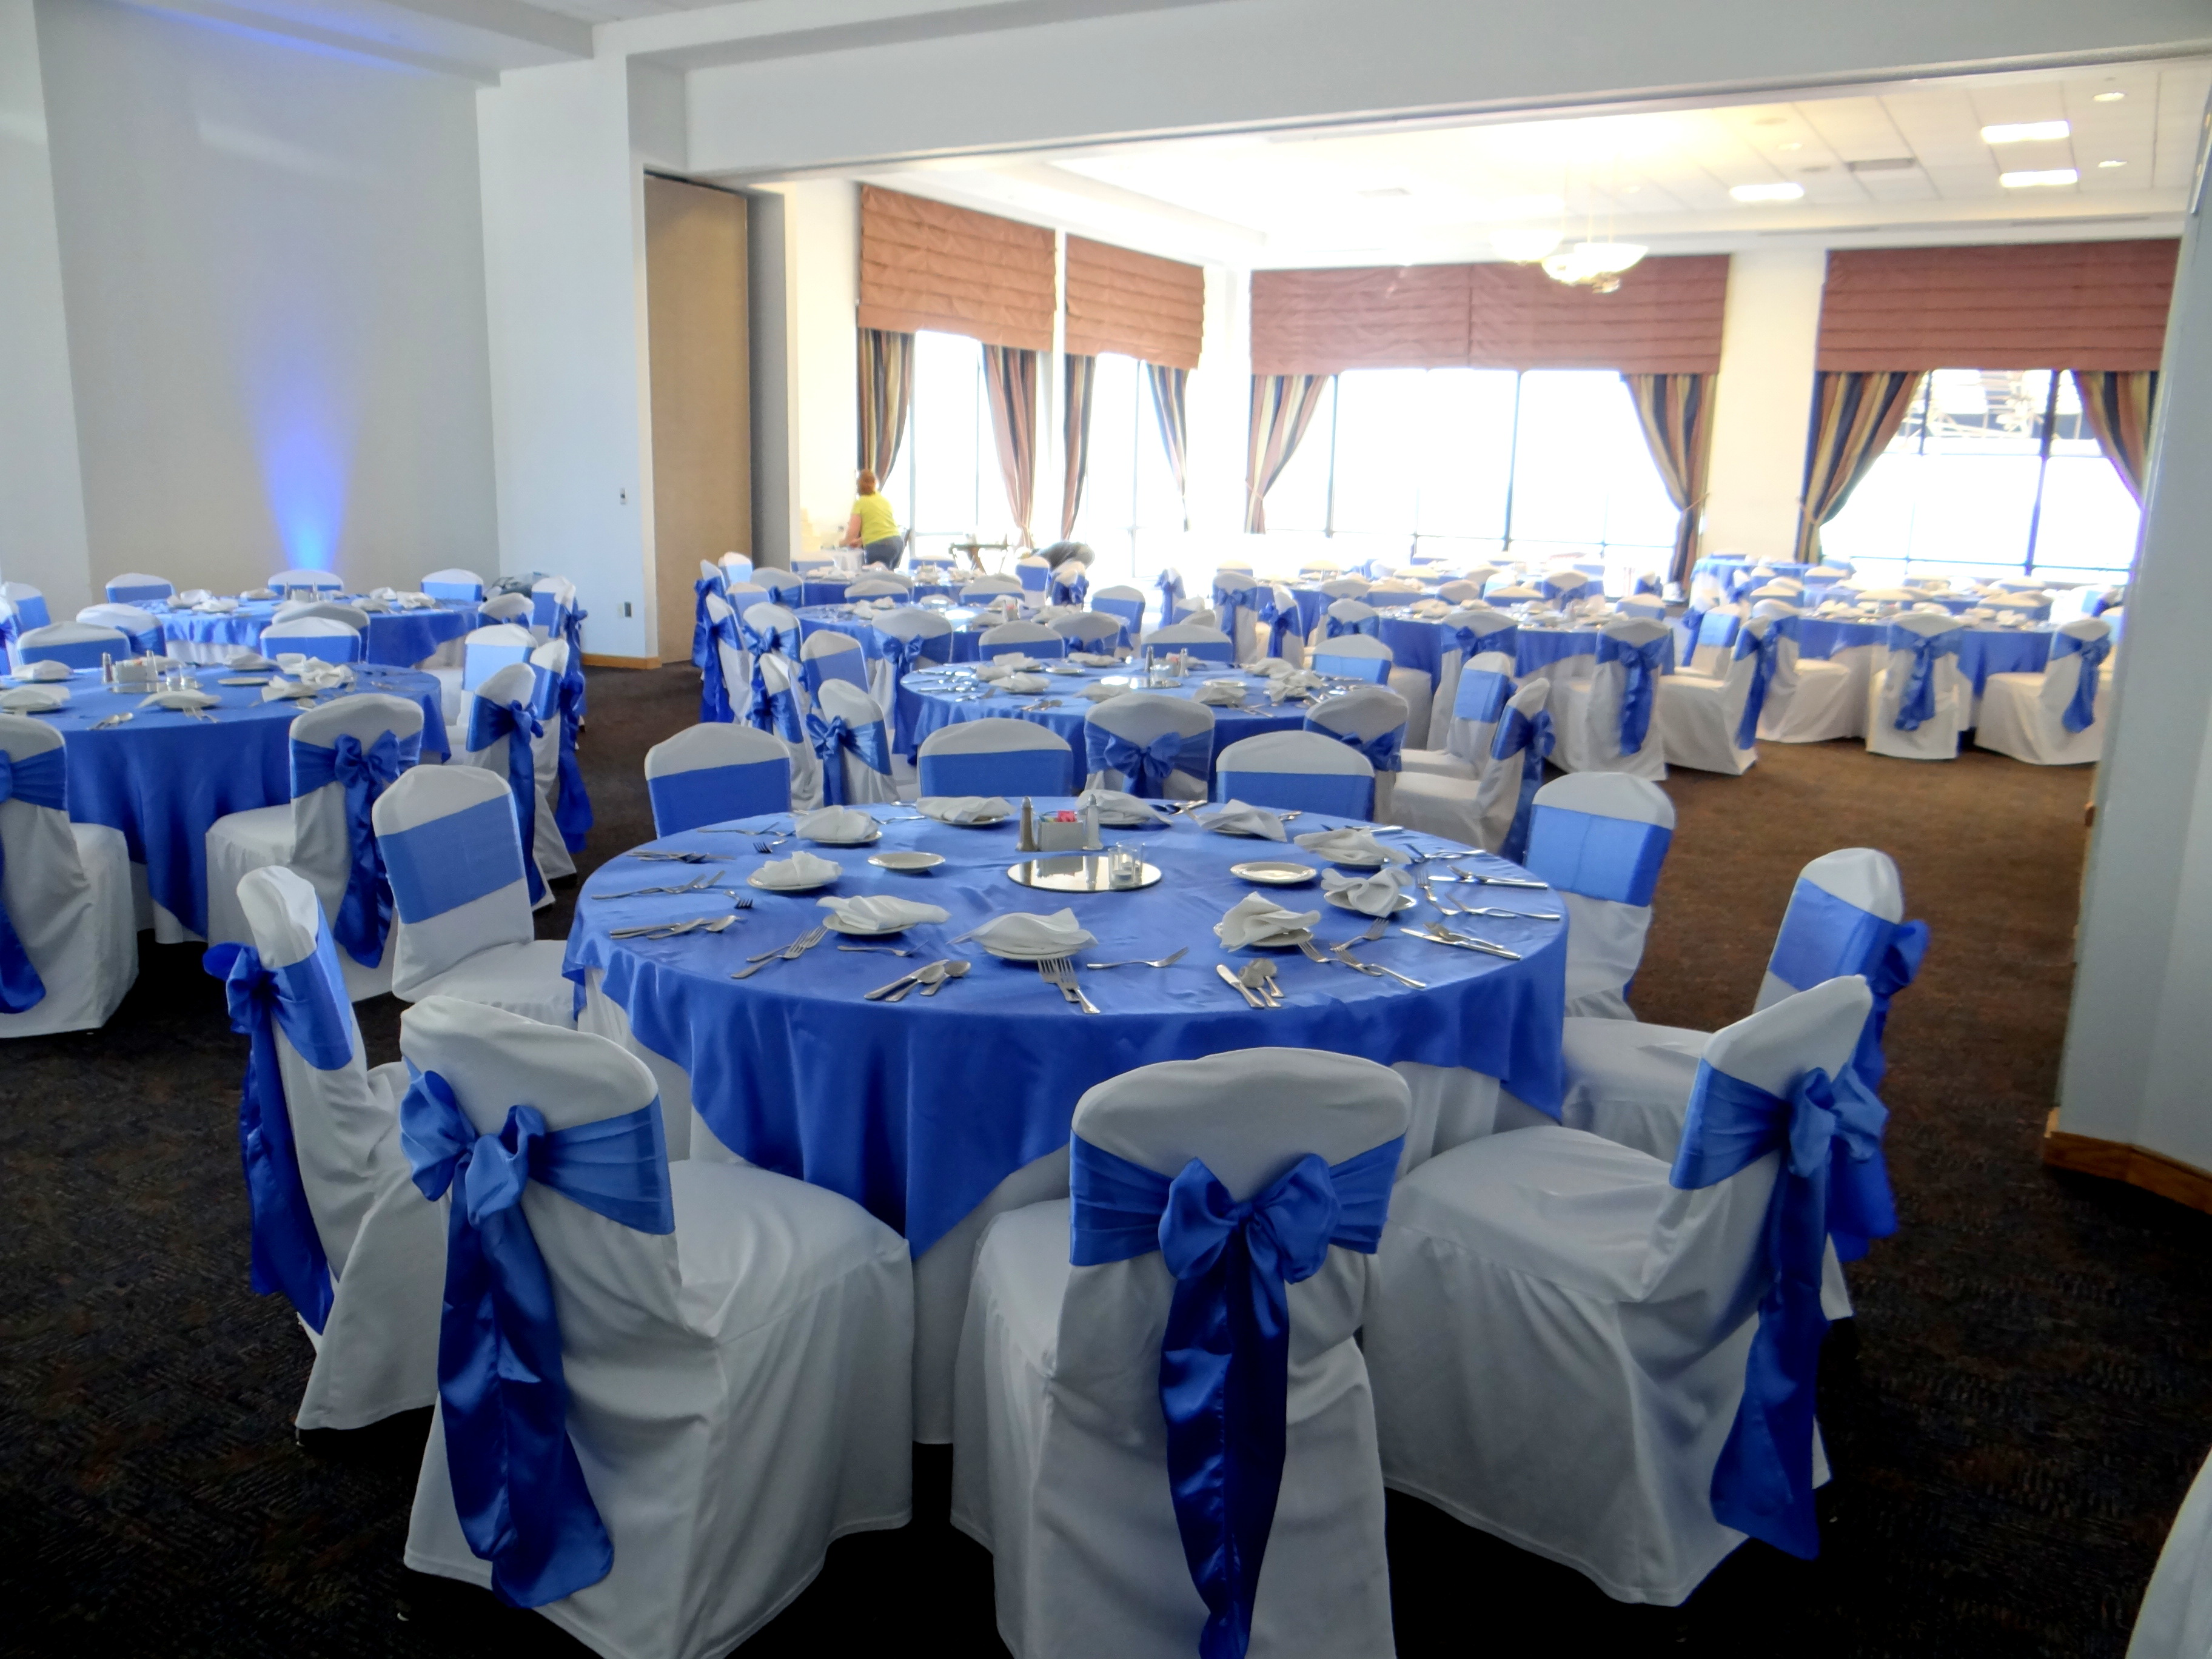 chair cover rentals langley nursing glider or rocking gallery classy coversclassy covers